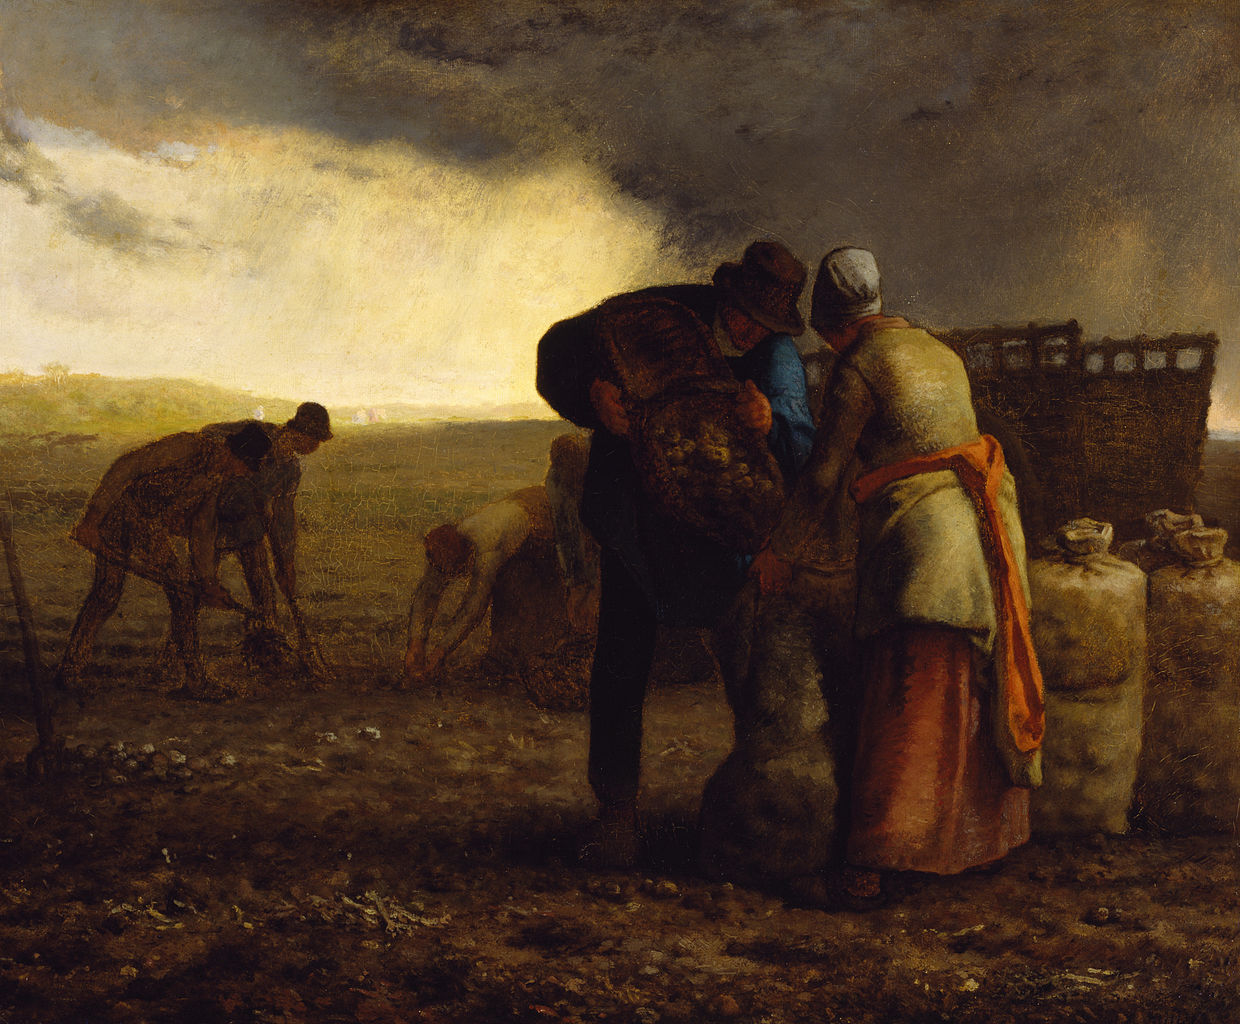 The Potato Harvest, by Jean-François Millet, 1857